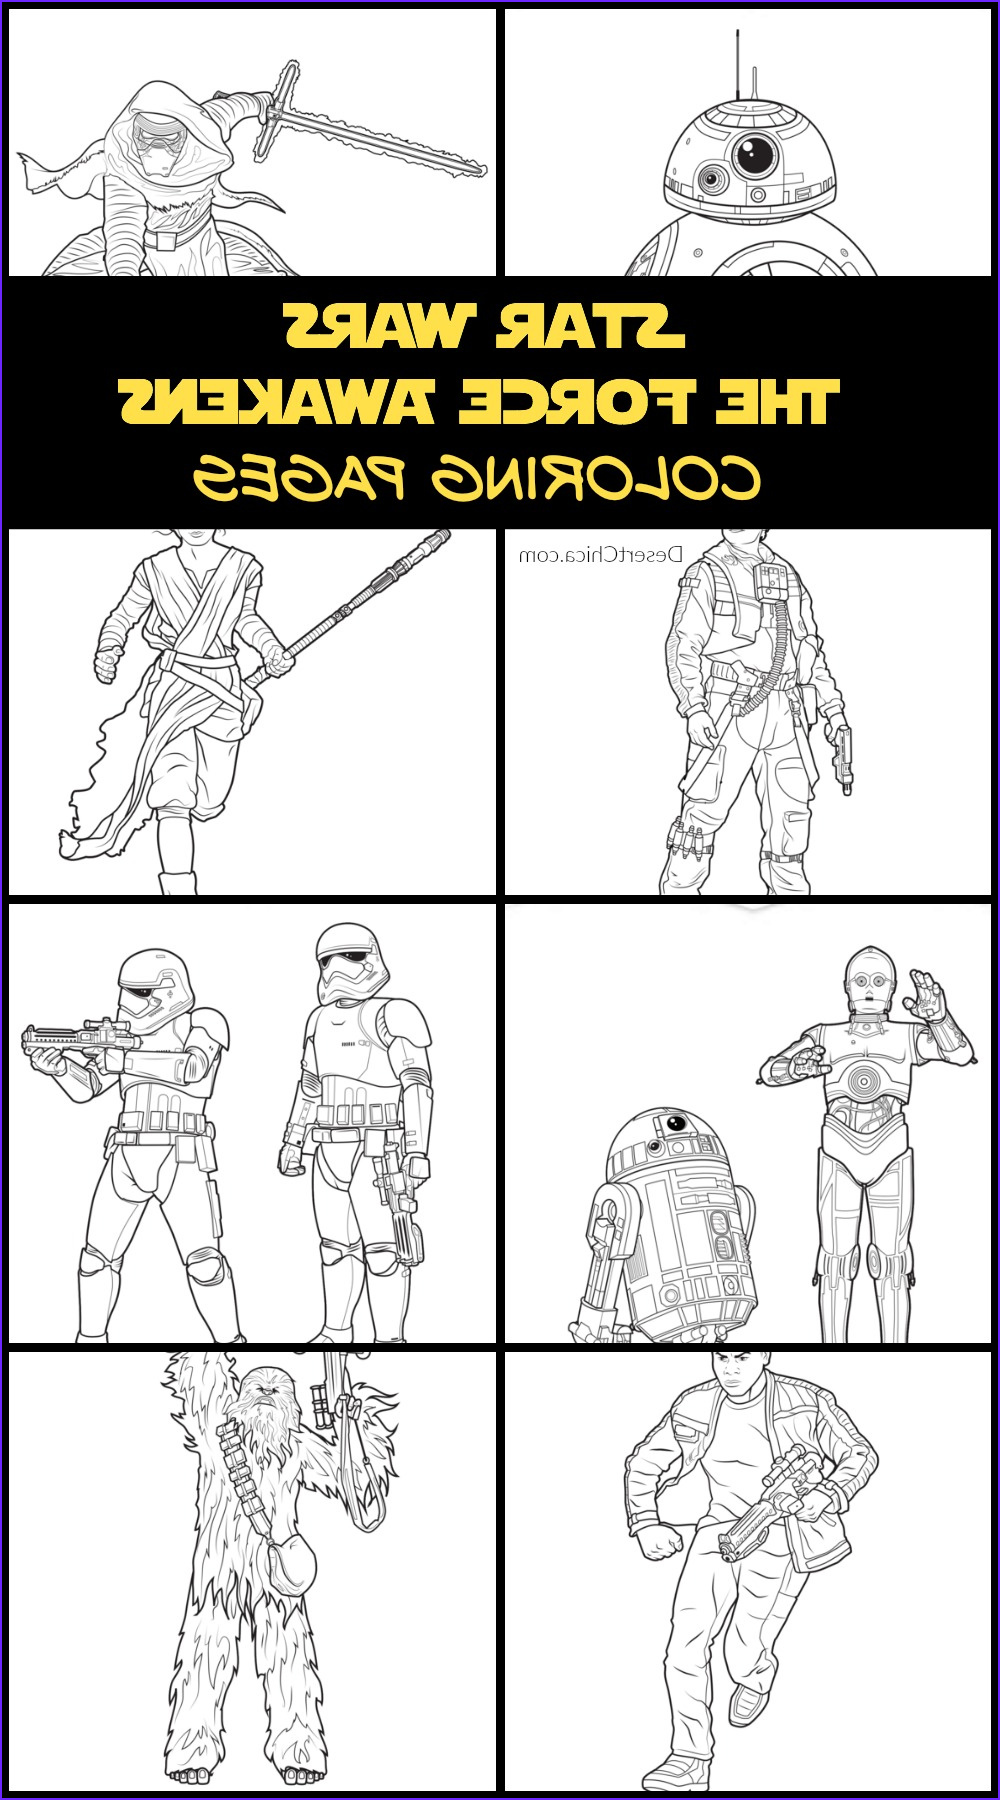 Star Wars the force Awakens Coloring Pages New Gallery Star Wars the force Awakens Coloring Pages and Activities